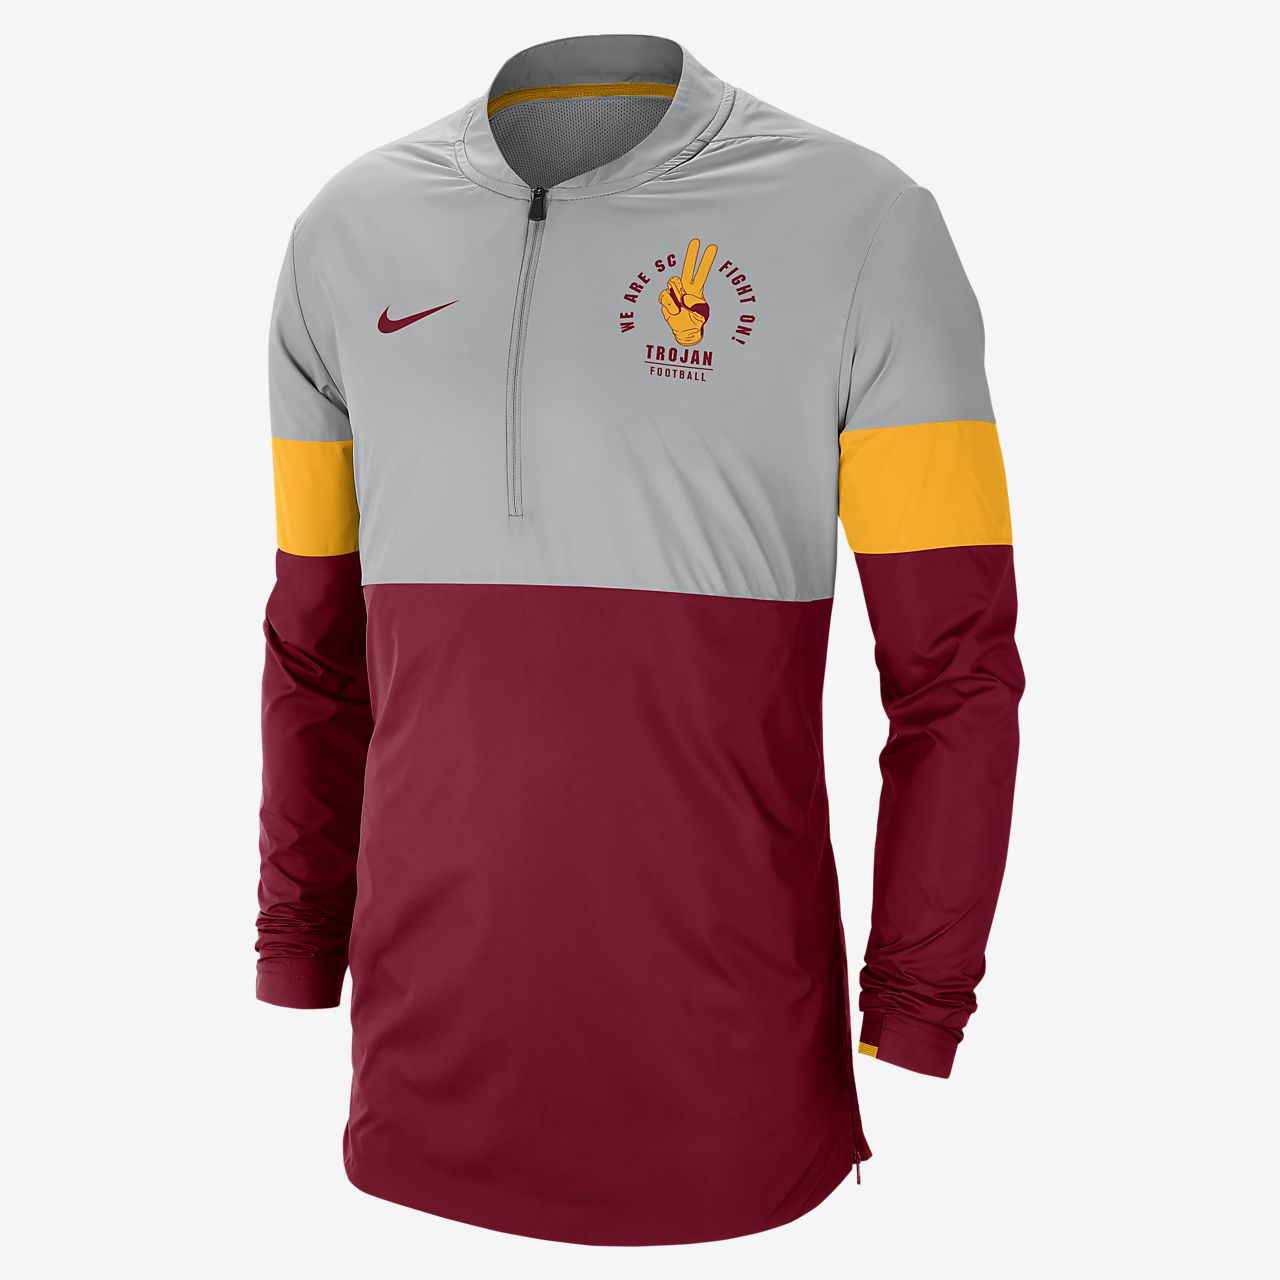 Nike College (USC) Men's Jacket